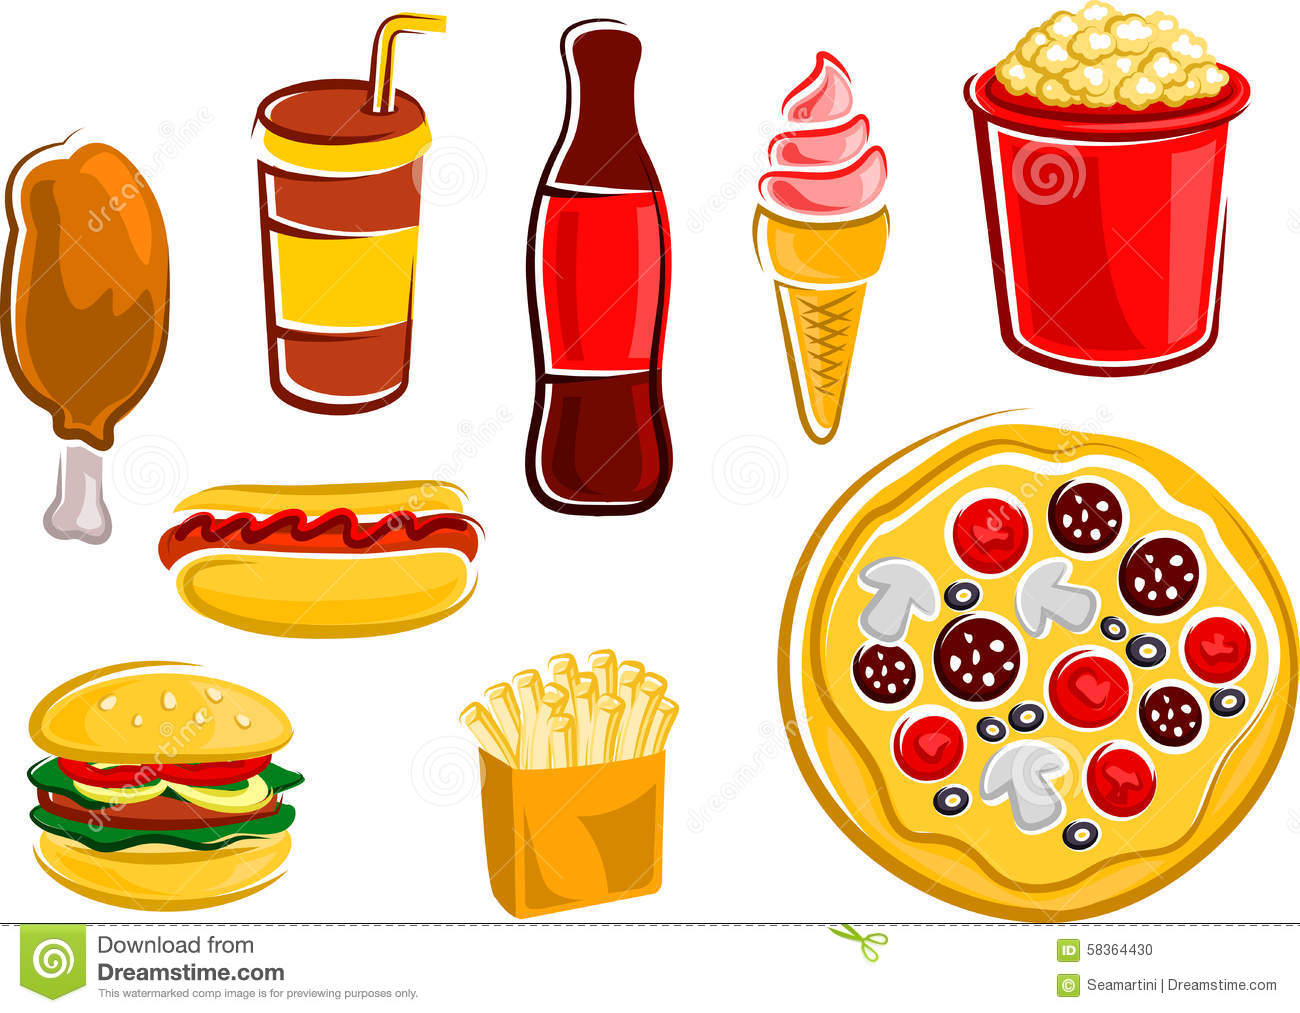 snacks fast cartoon drinks fries chicken french dog pizza cup fried rapida hamburger popcorn bucket bottle vector spuntini alimenti bevande